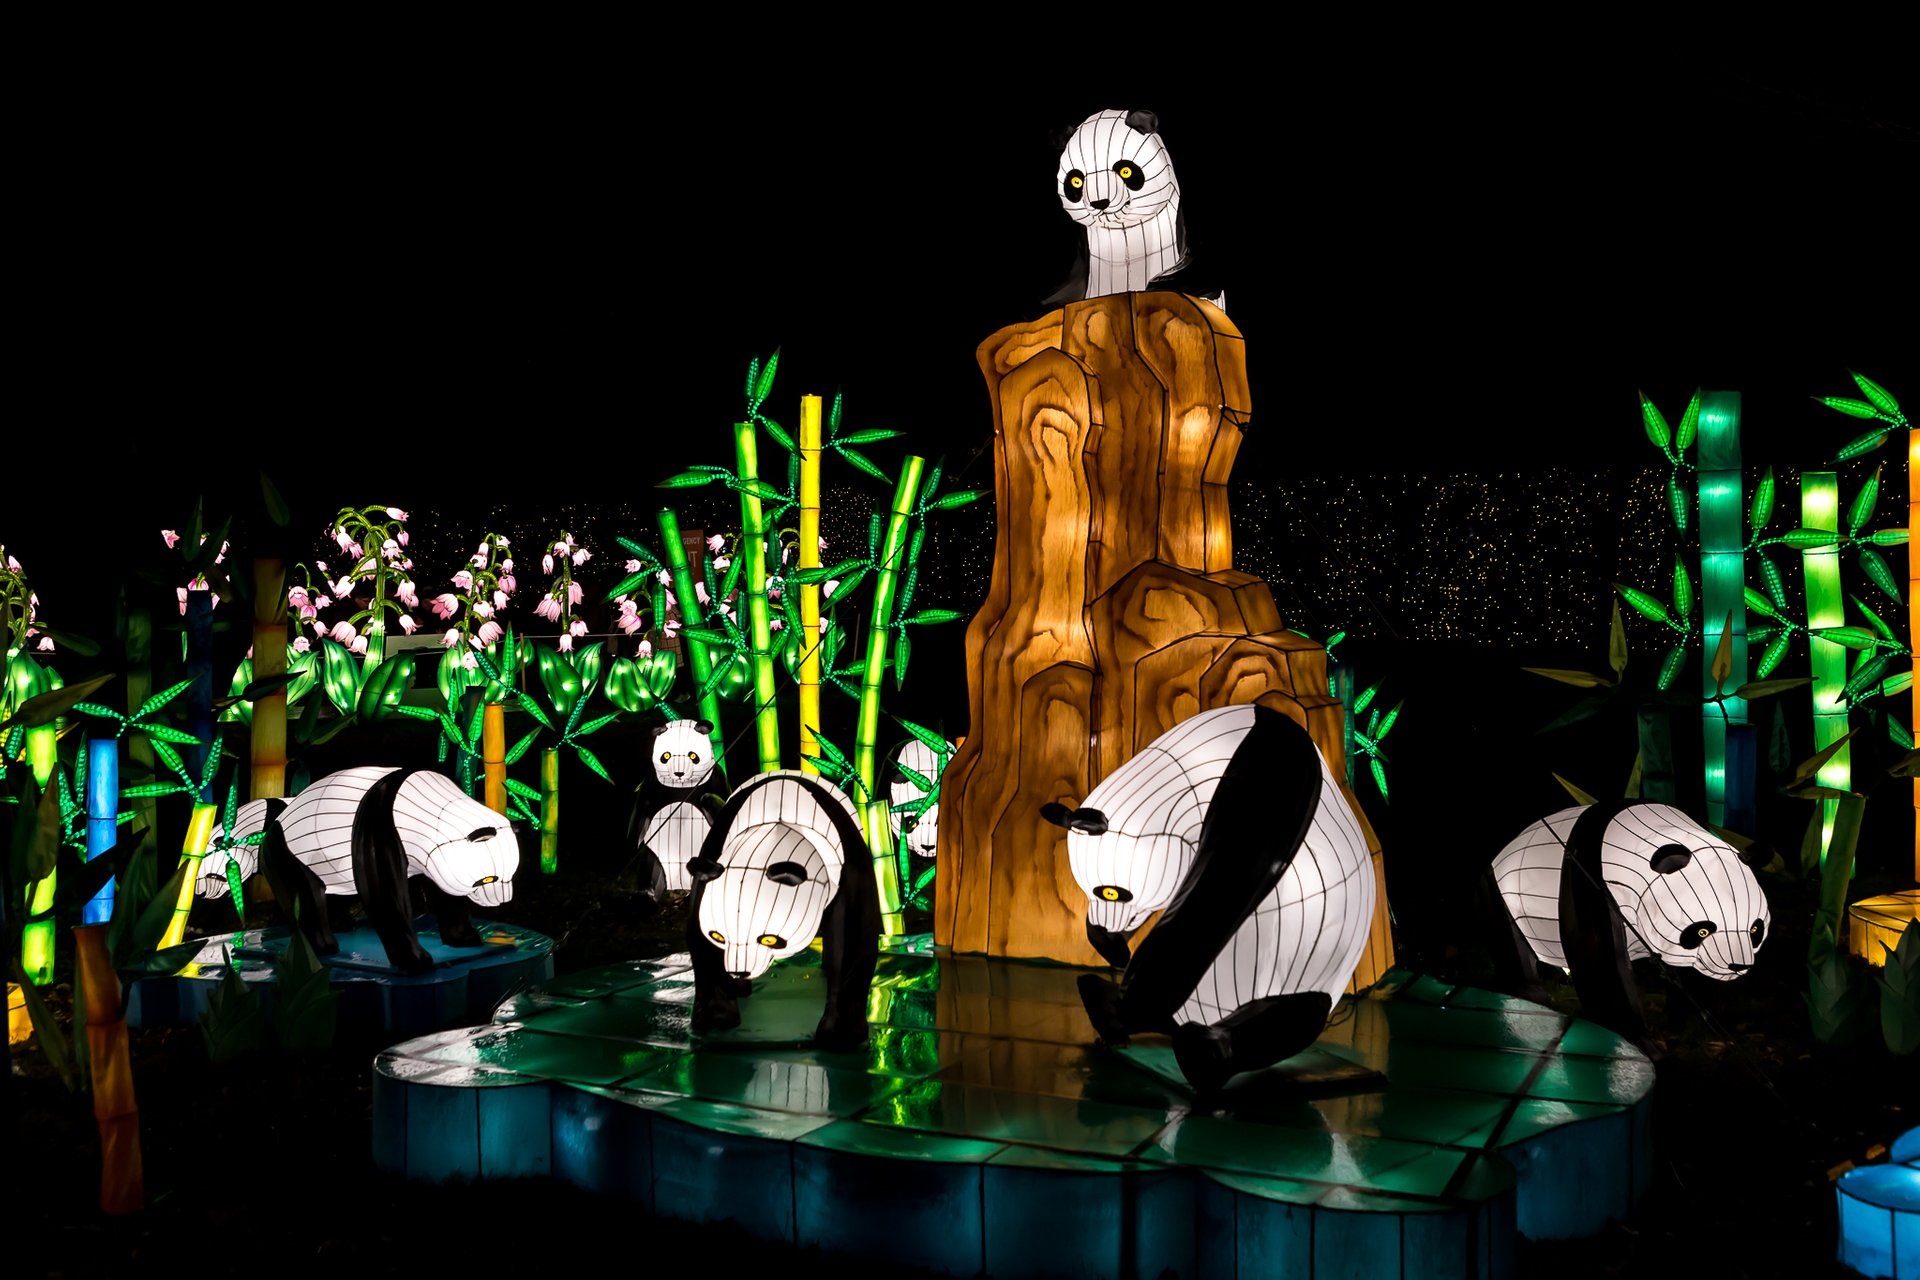 NYC Winter Lantern Festival in New York 2020 - Best Time